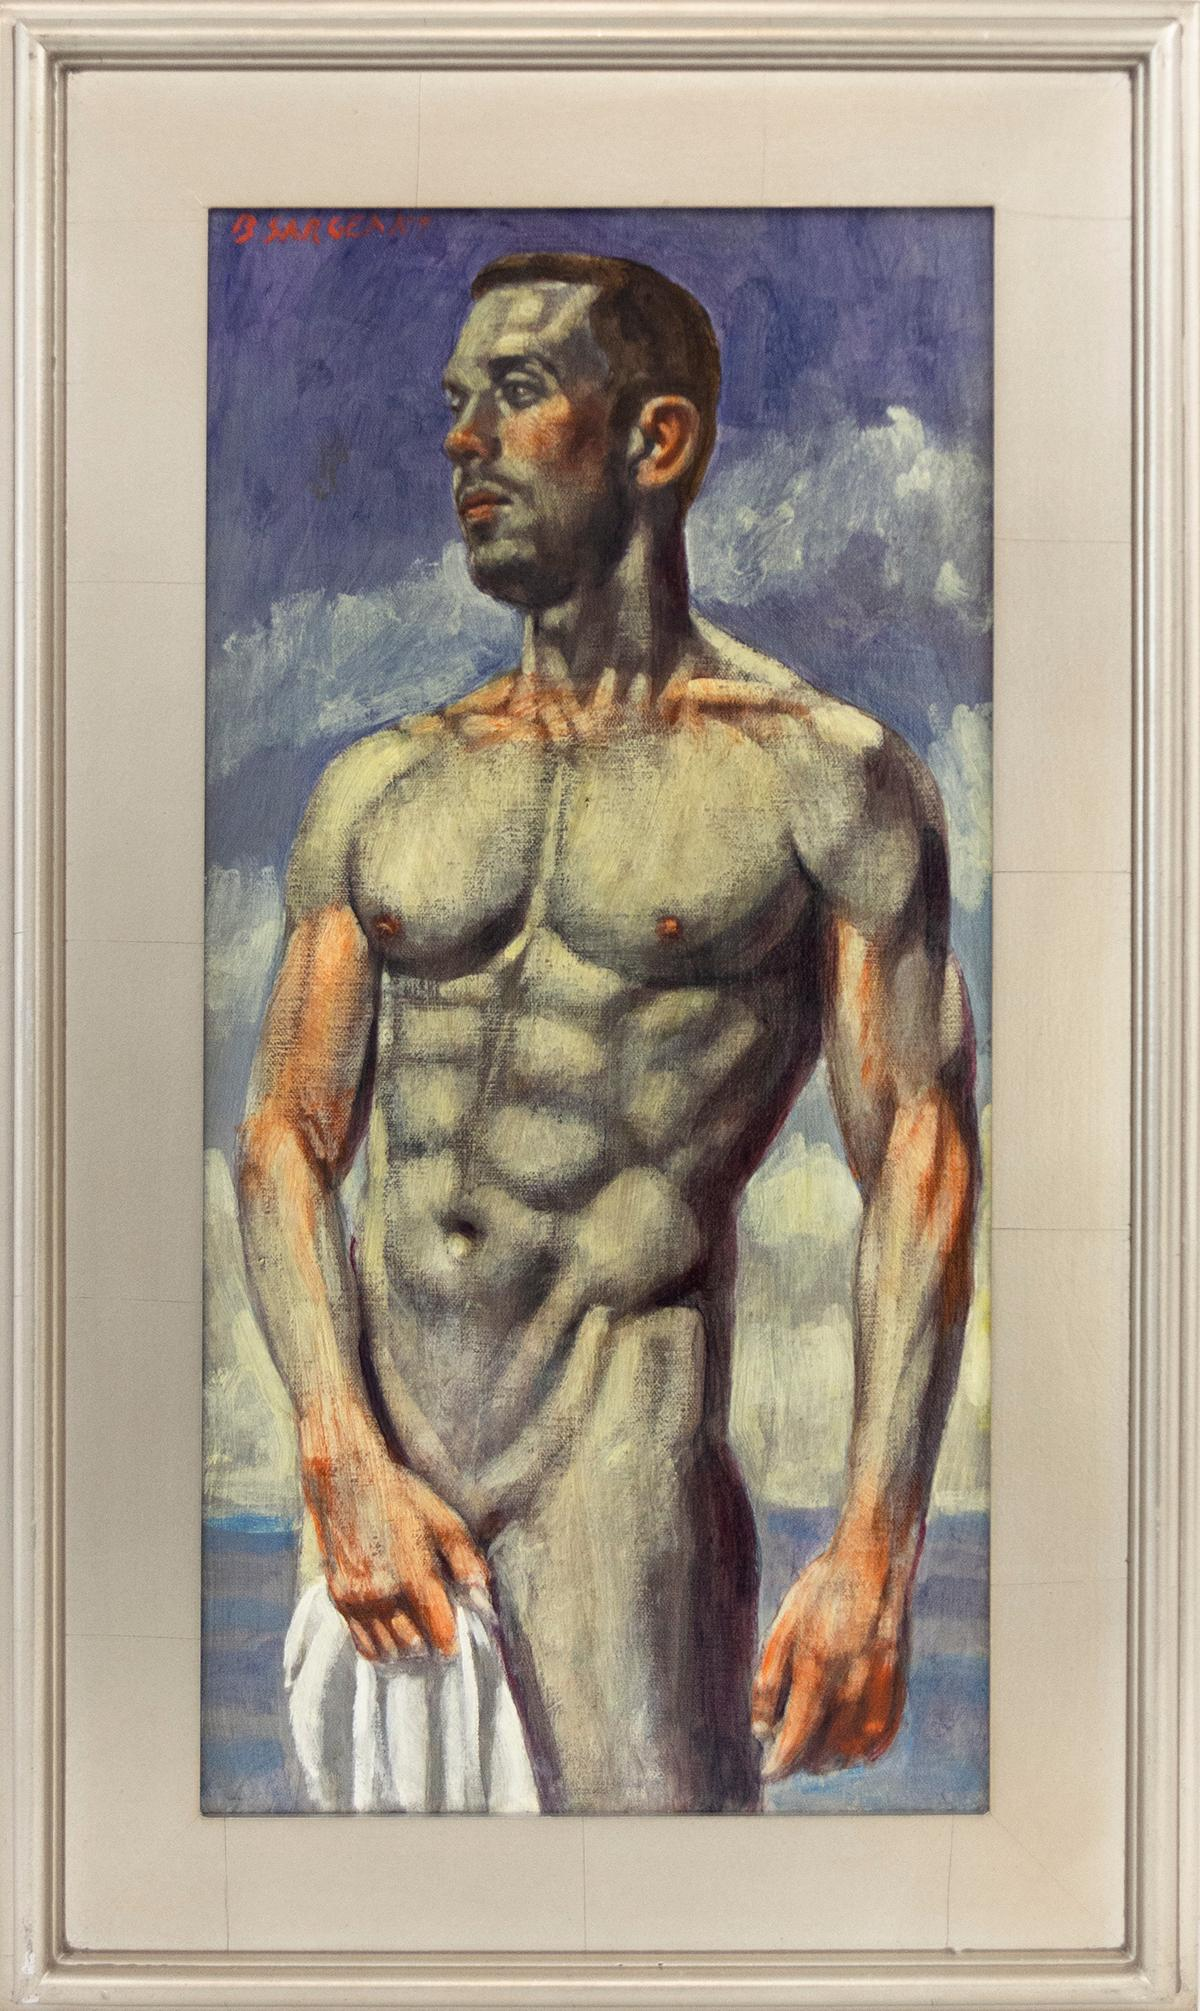 [Bruce Sargeant (1898-1938)] Man with Towel